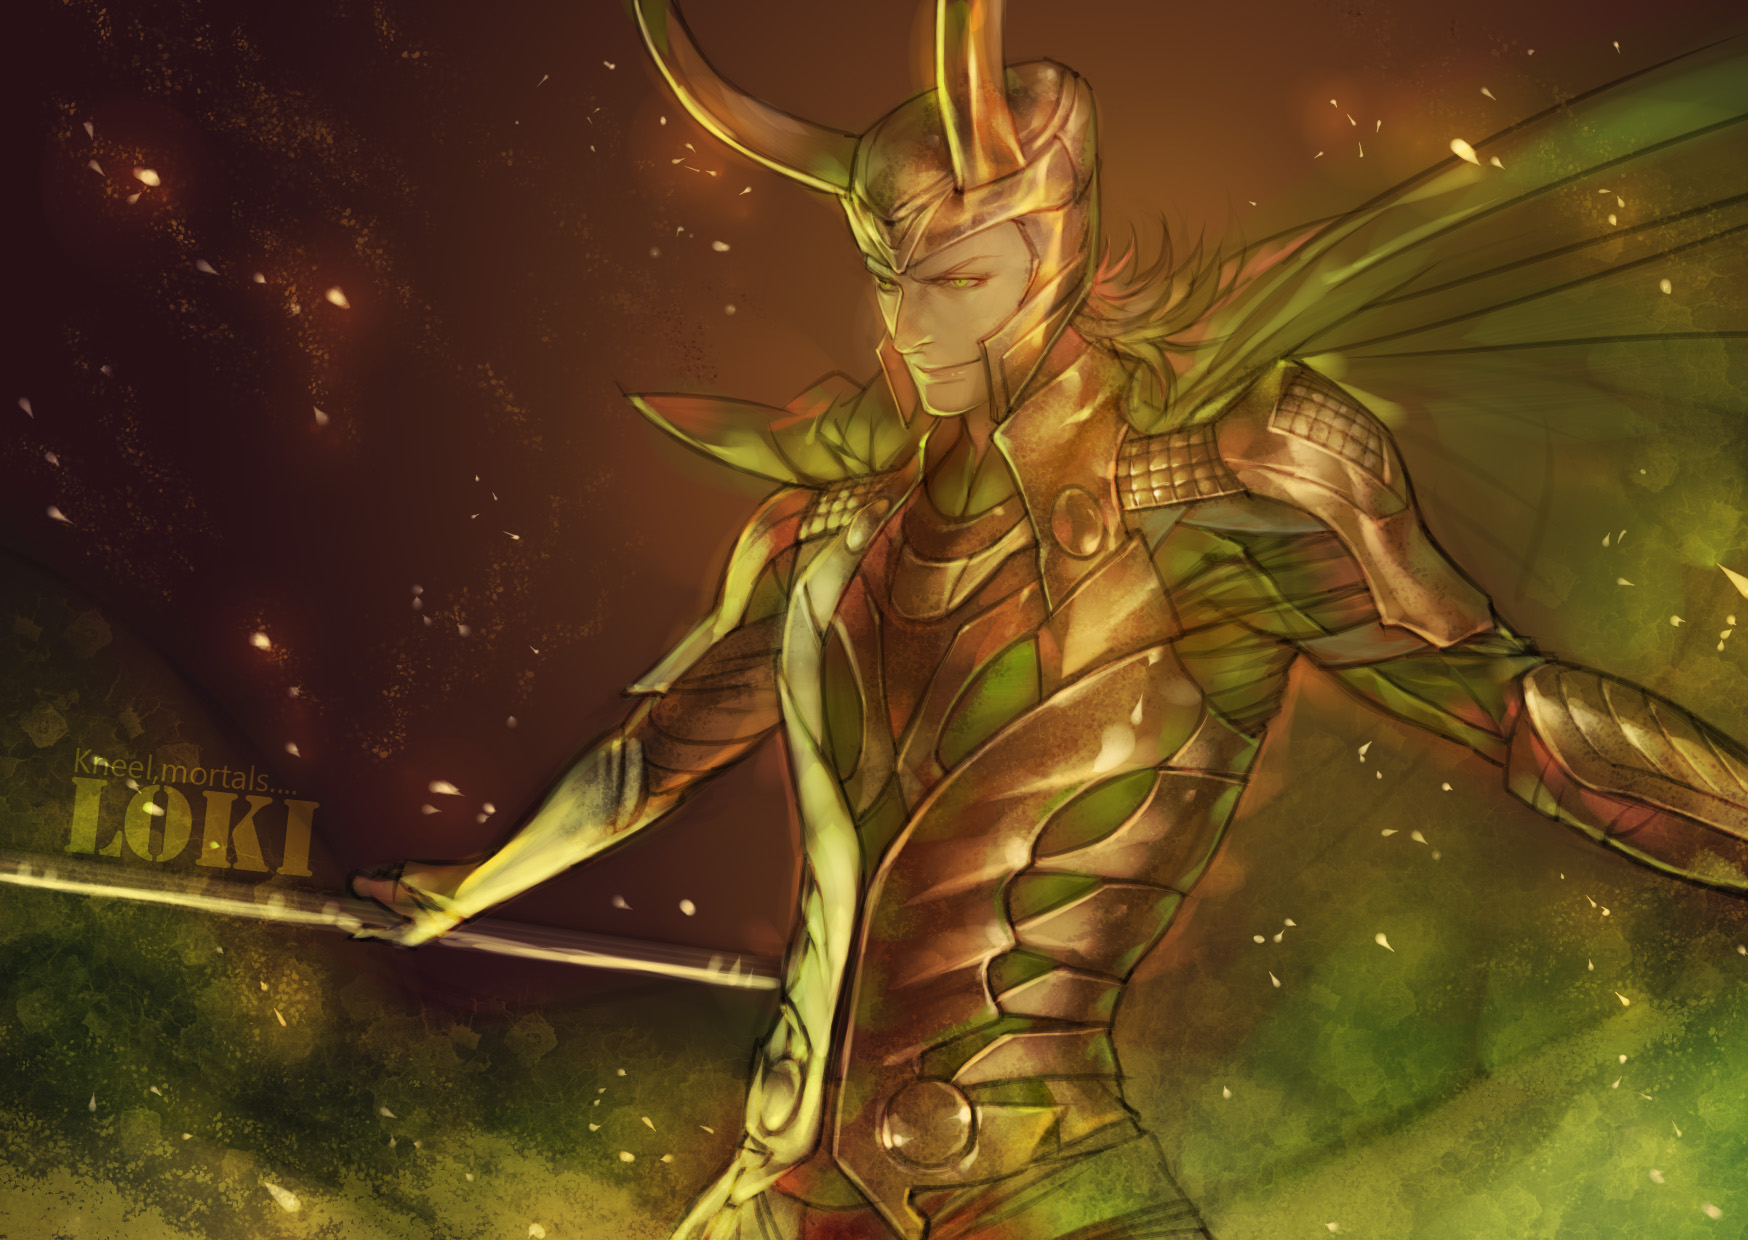 Wonderful Wallpaper Marvel Odin - Loki  HD_794923.jpg